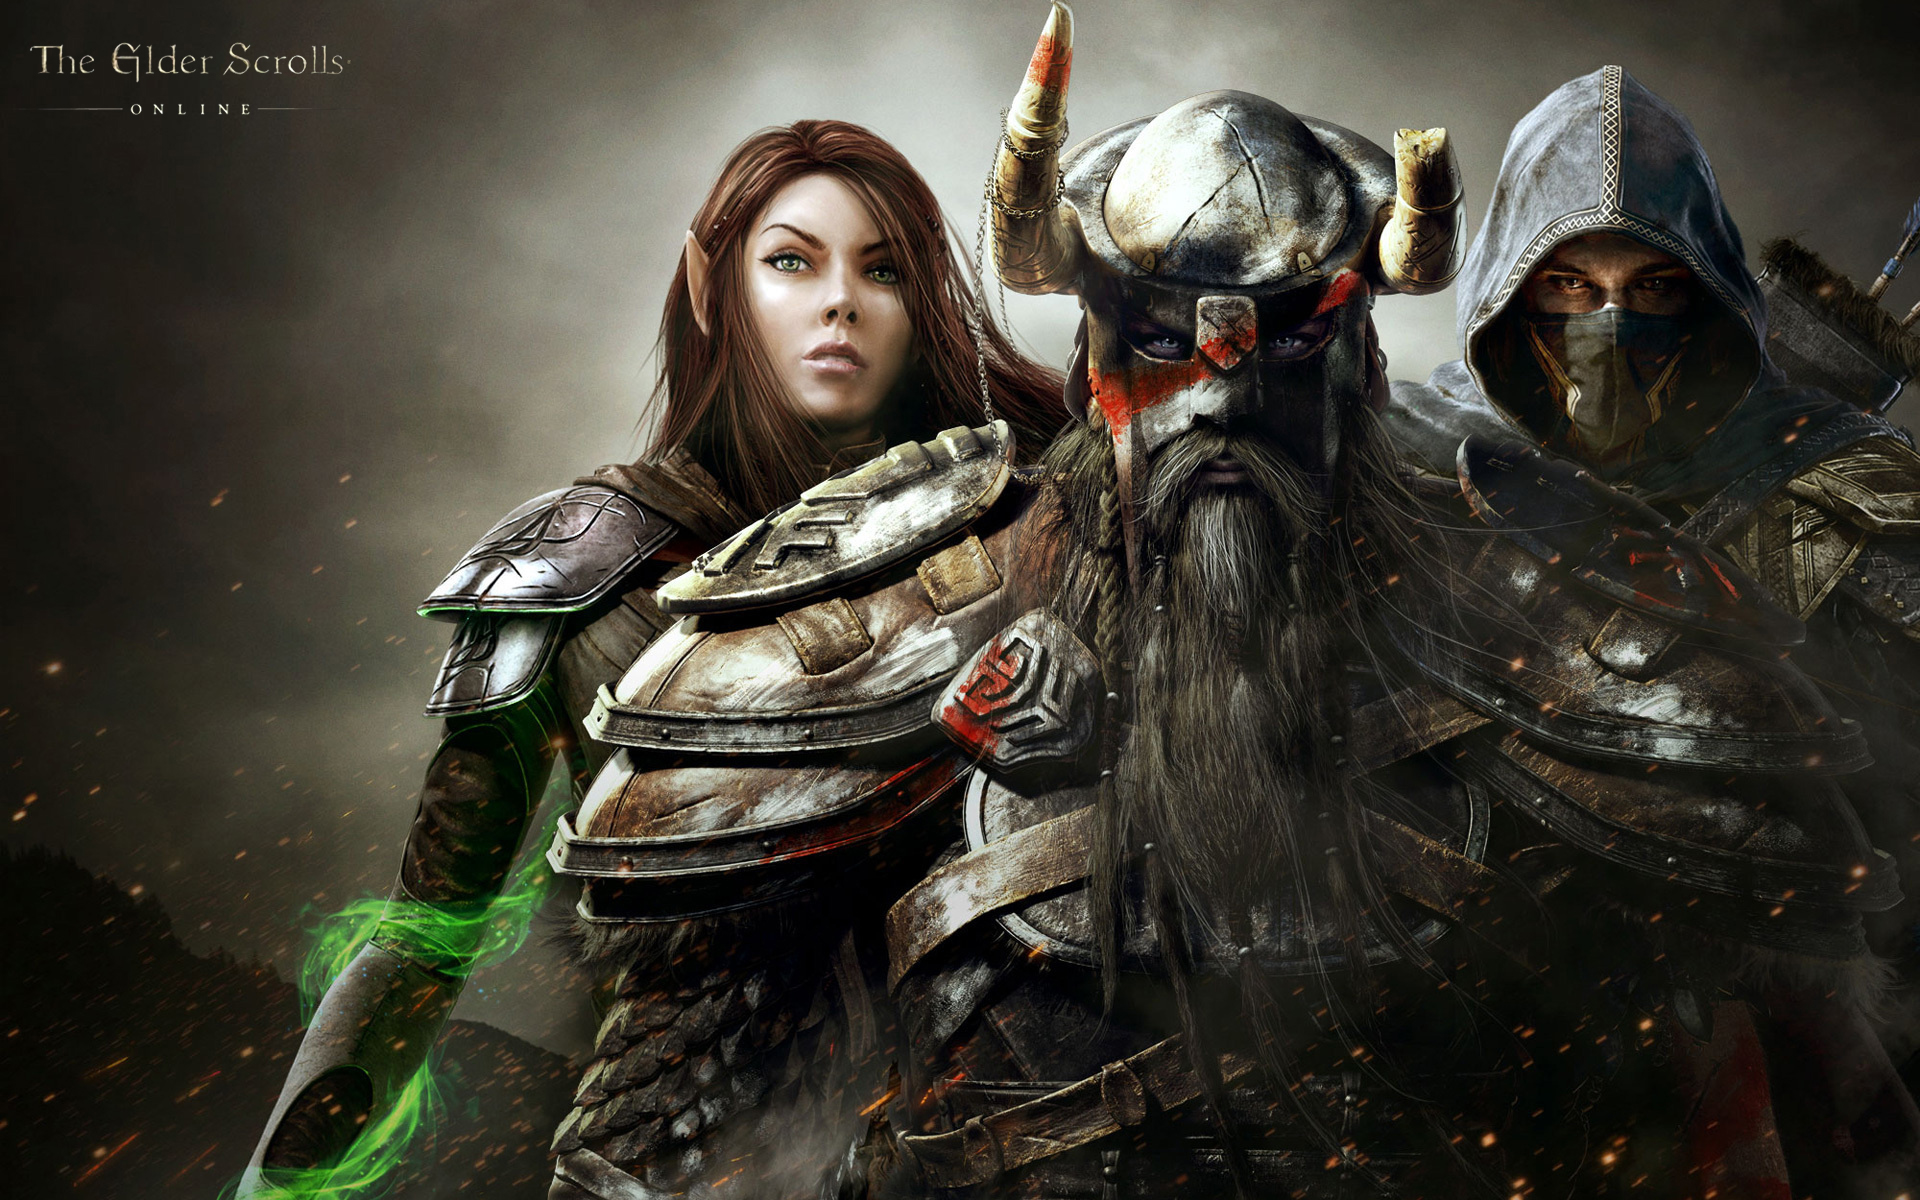 Elder Scrolls Online Wallpaper By Sentientsword On Deviantart